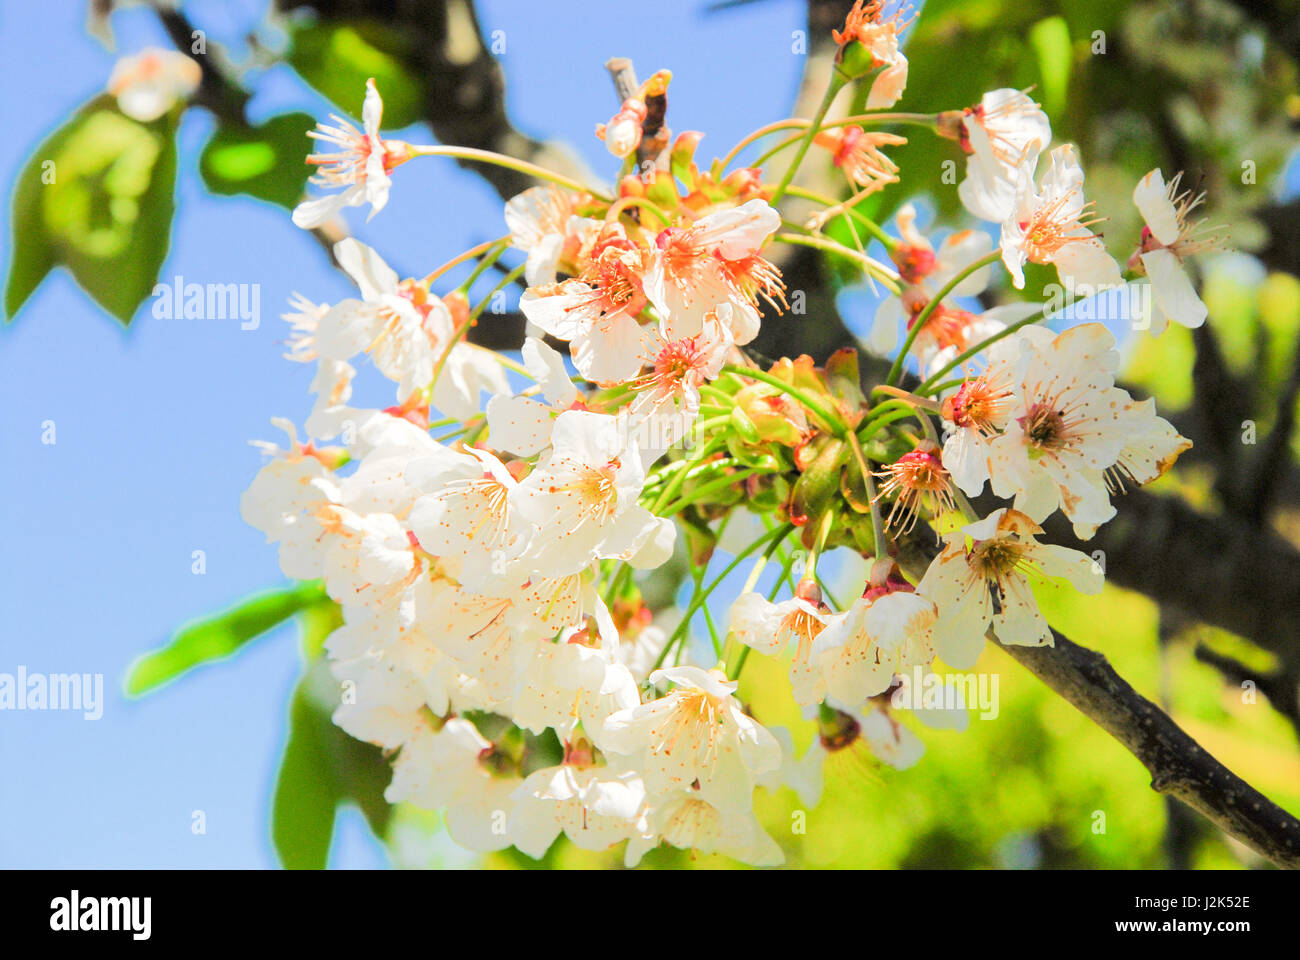 Portland, Dorset, UK. 29th April, 2017. Apple blossom begins to fall in a sunny Portland garden Credit: stuart fretwell/Alamy - Stock Image